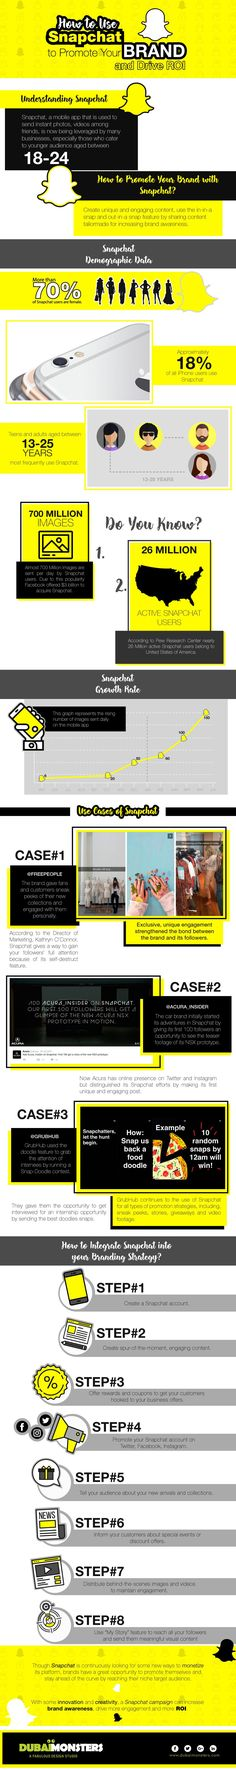 How to Use #Snapchat to Promote Your Brand and Generate Revenue #Infographic #SocialMedia